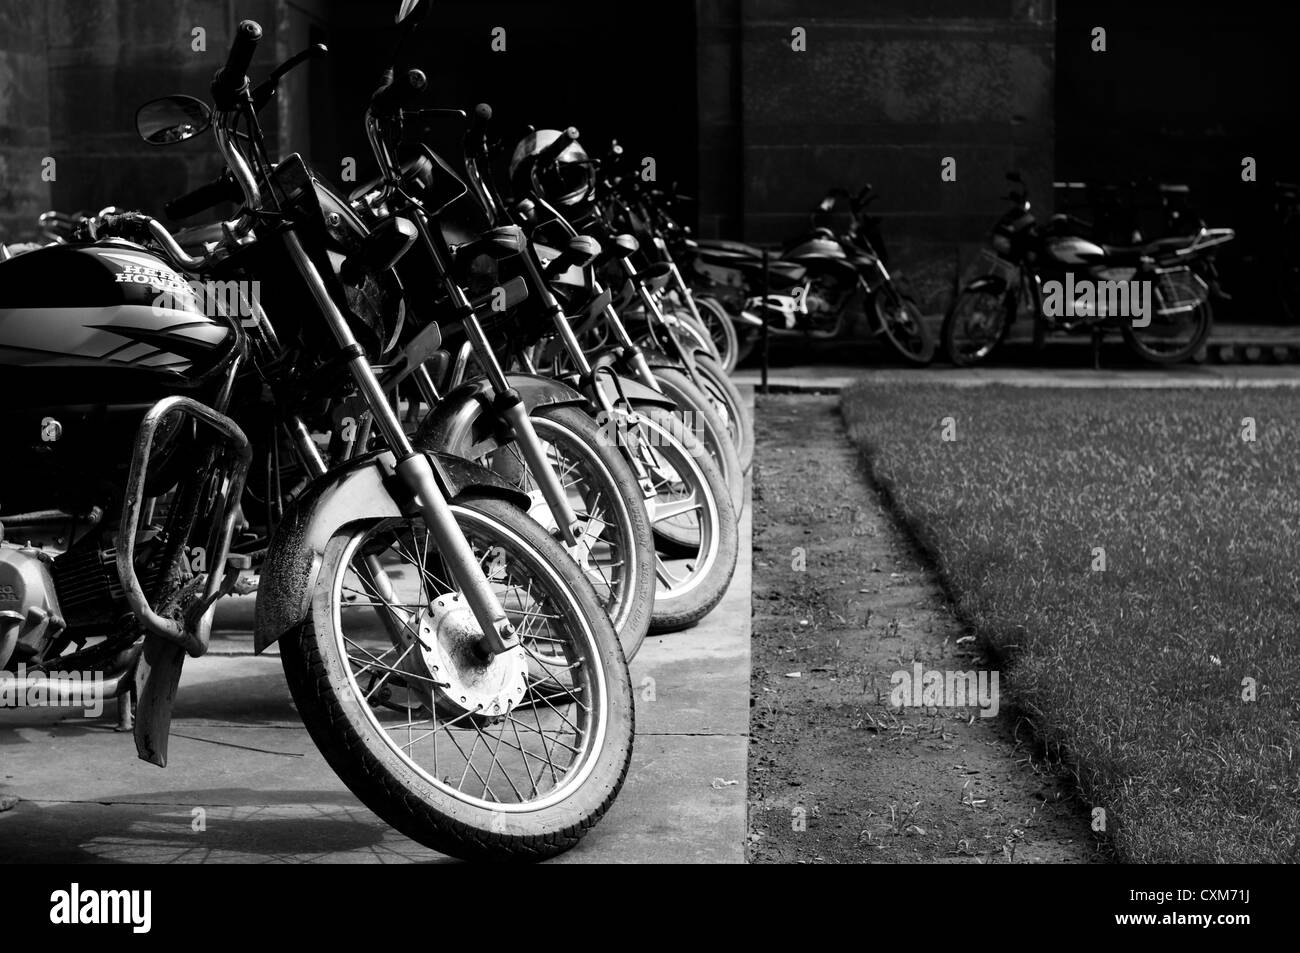 Motorbikes at Agra Fort - Stock Image